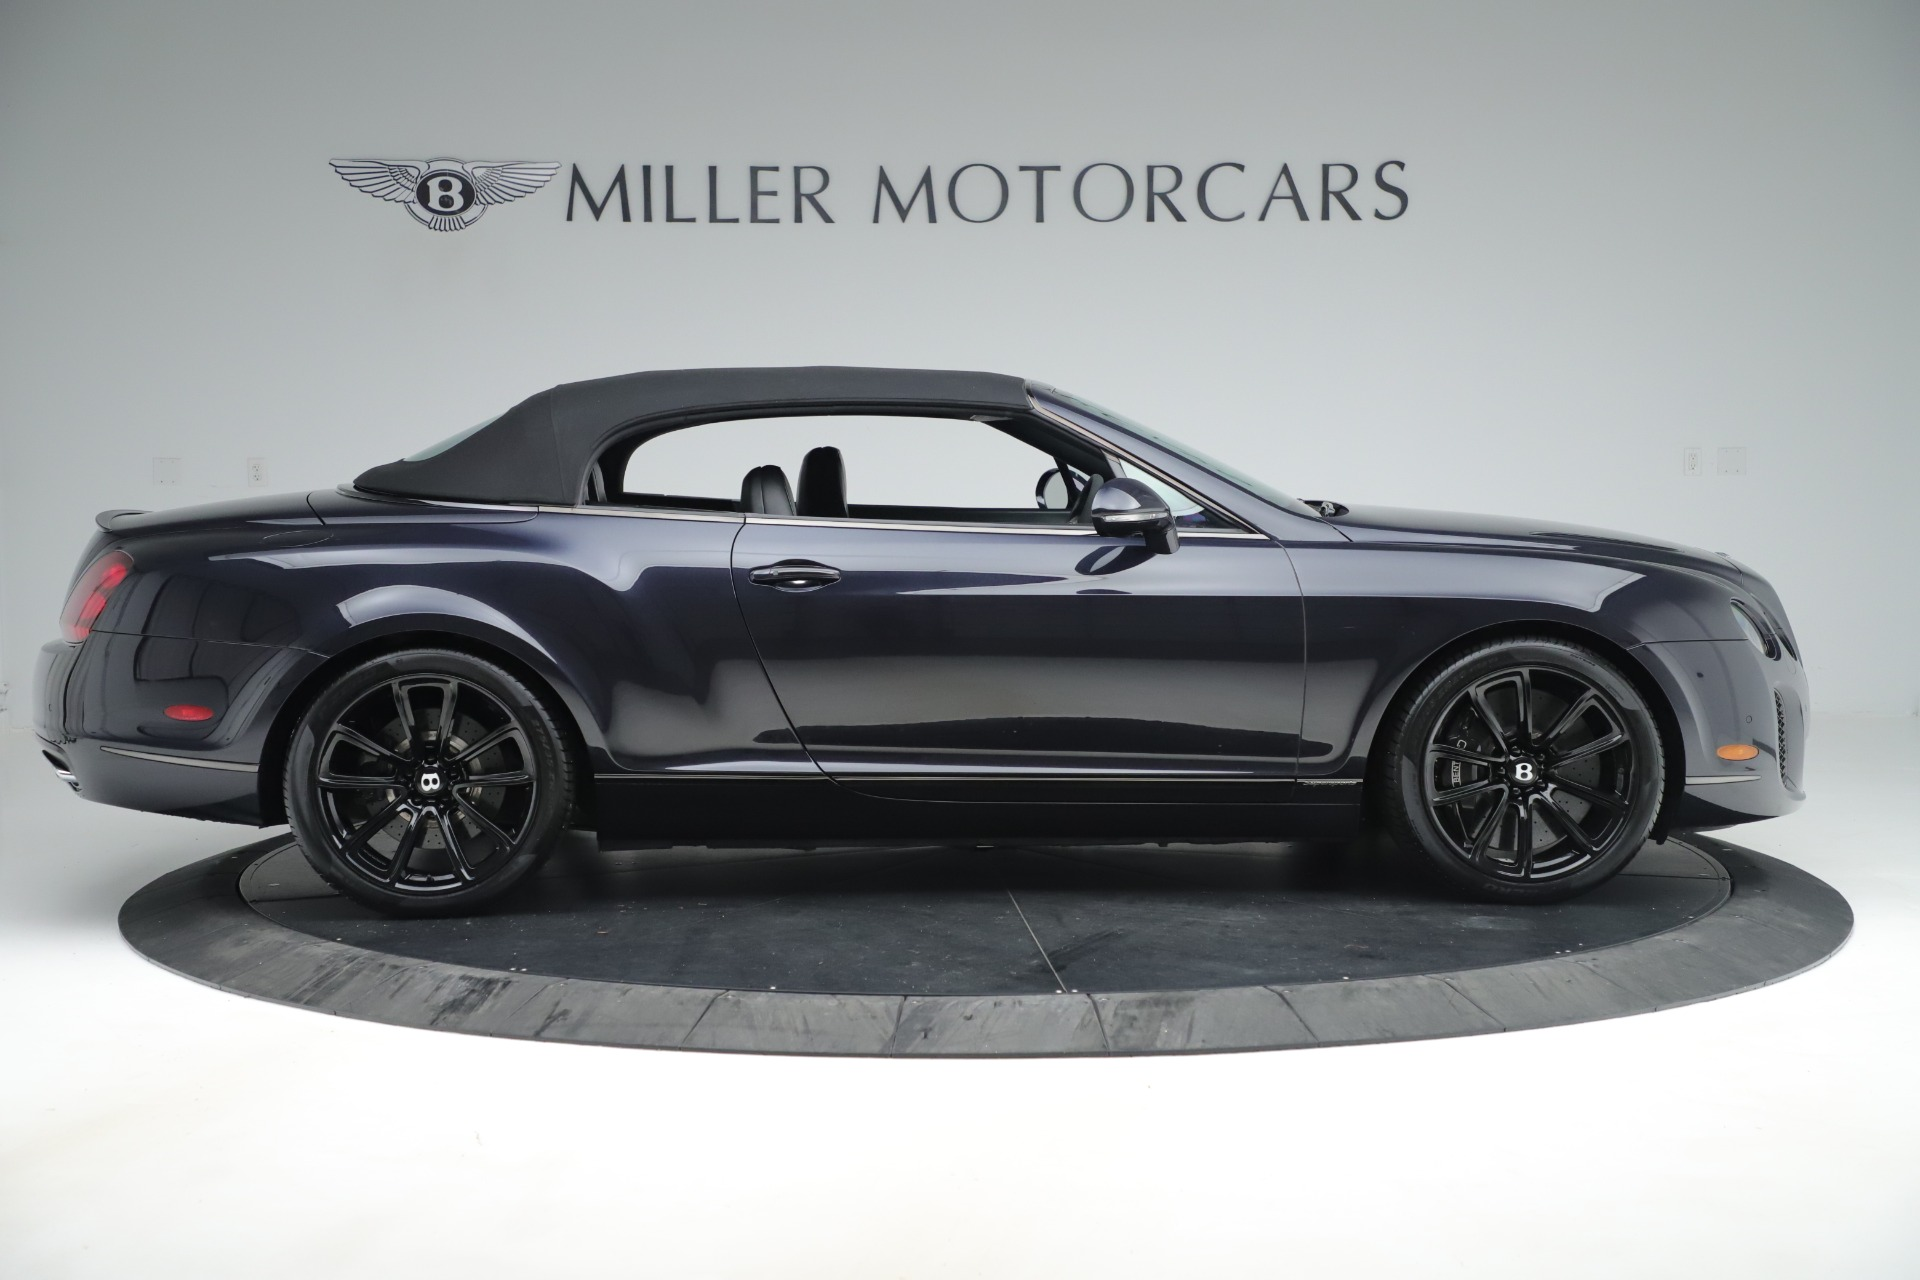 Used 2012 Bentley Continental GT Supersports For Sale In Westport, CT 3214_p17